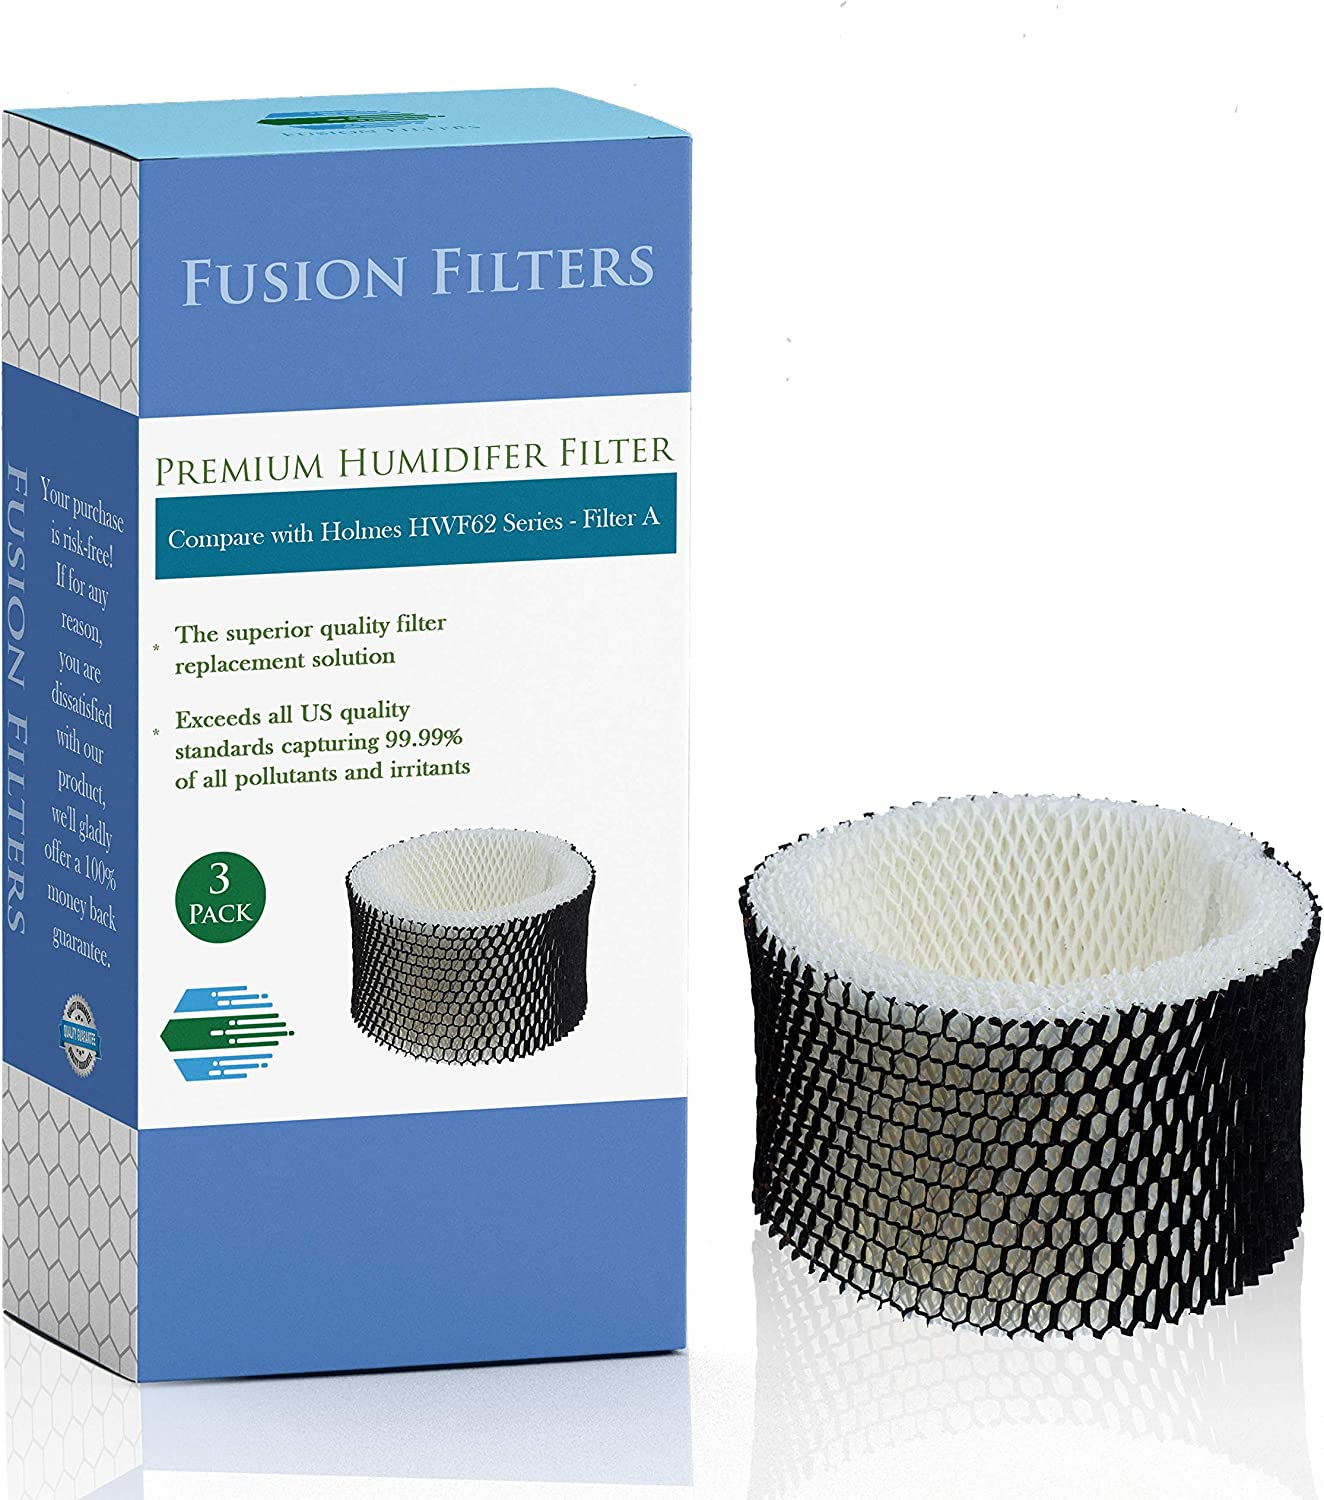 Fusion Filters - 3 Pack of Compatible Humidifier Filters - Replacement for Holmes HWF62 & HWF62CS Filter Series (Filter A) & Sunbeam HWF62 Filters